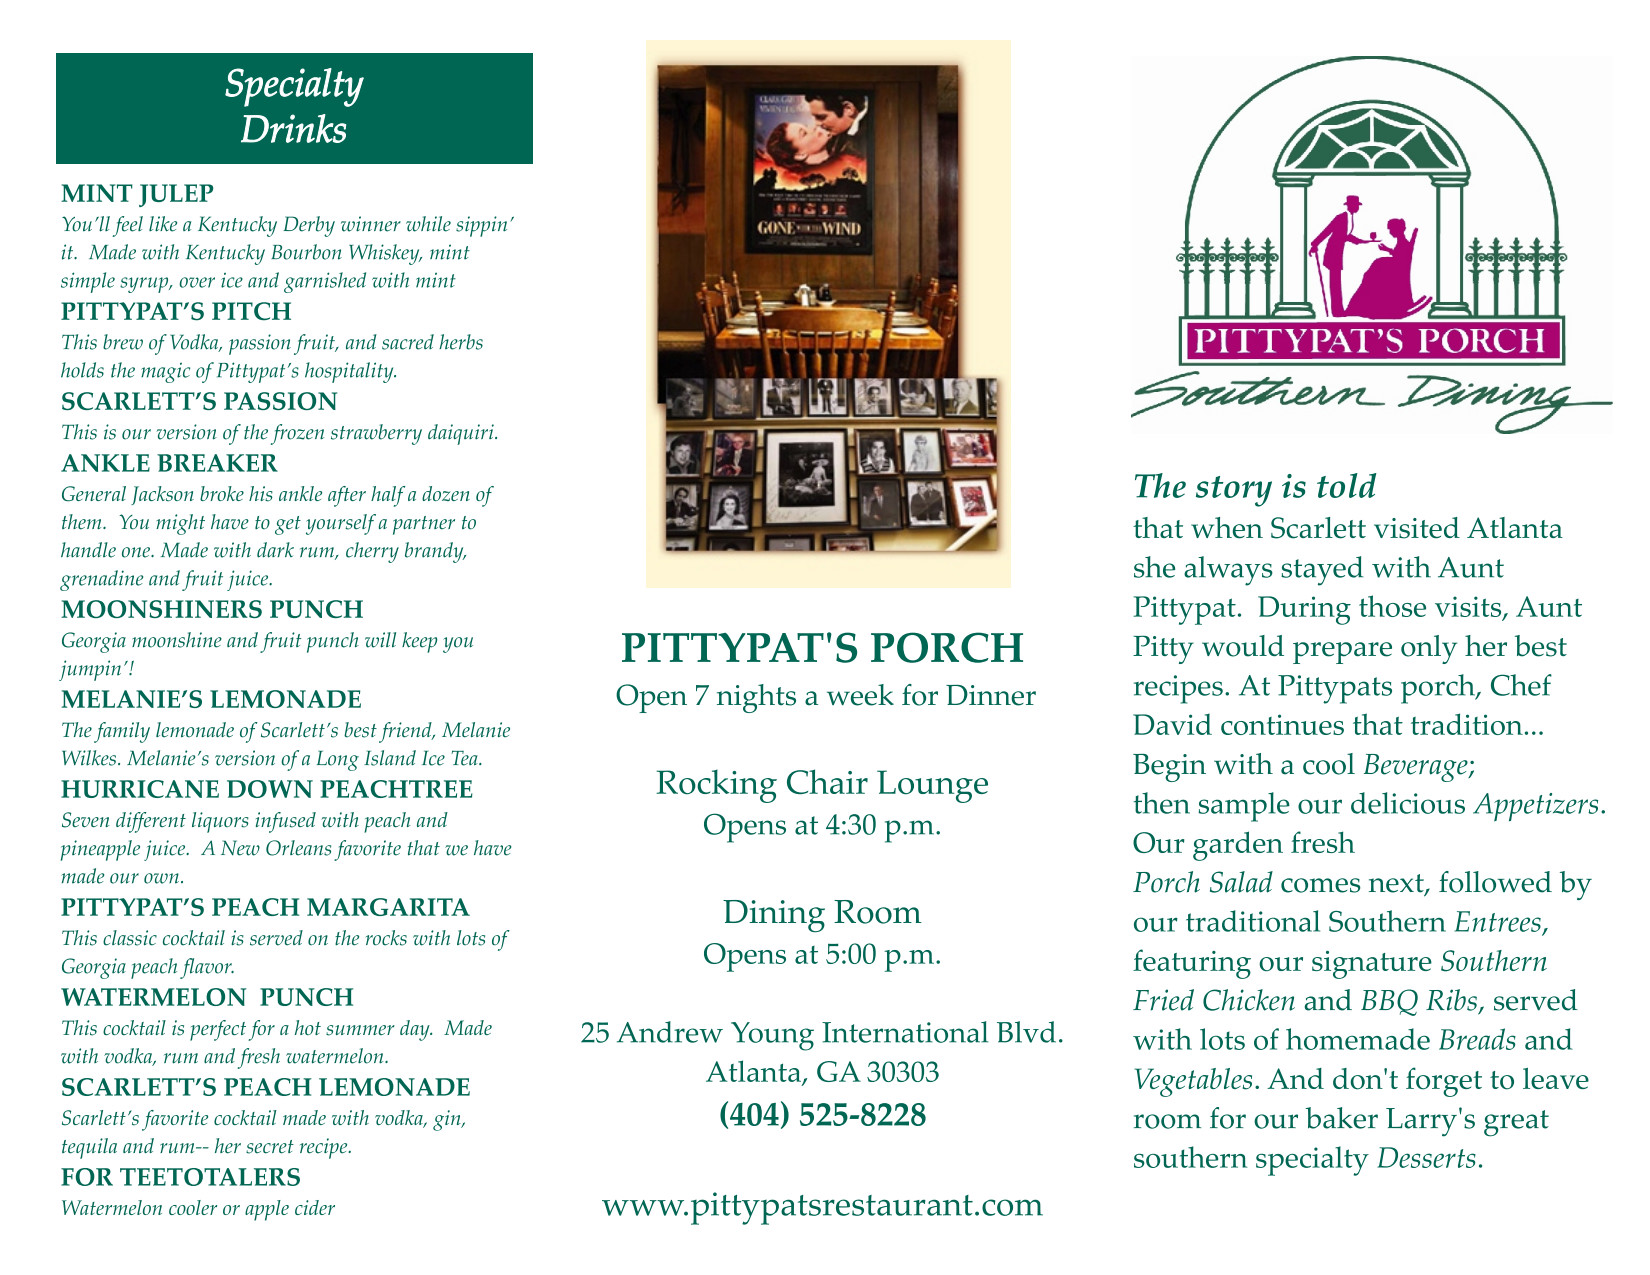 Pittypat's Porch Brochure